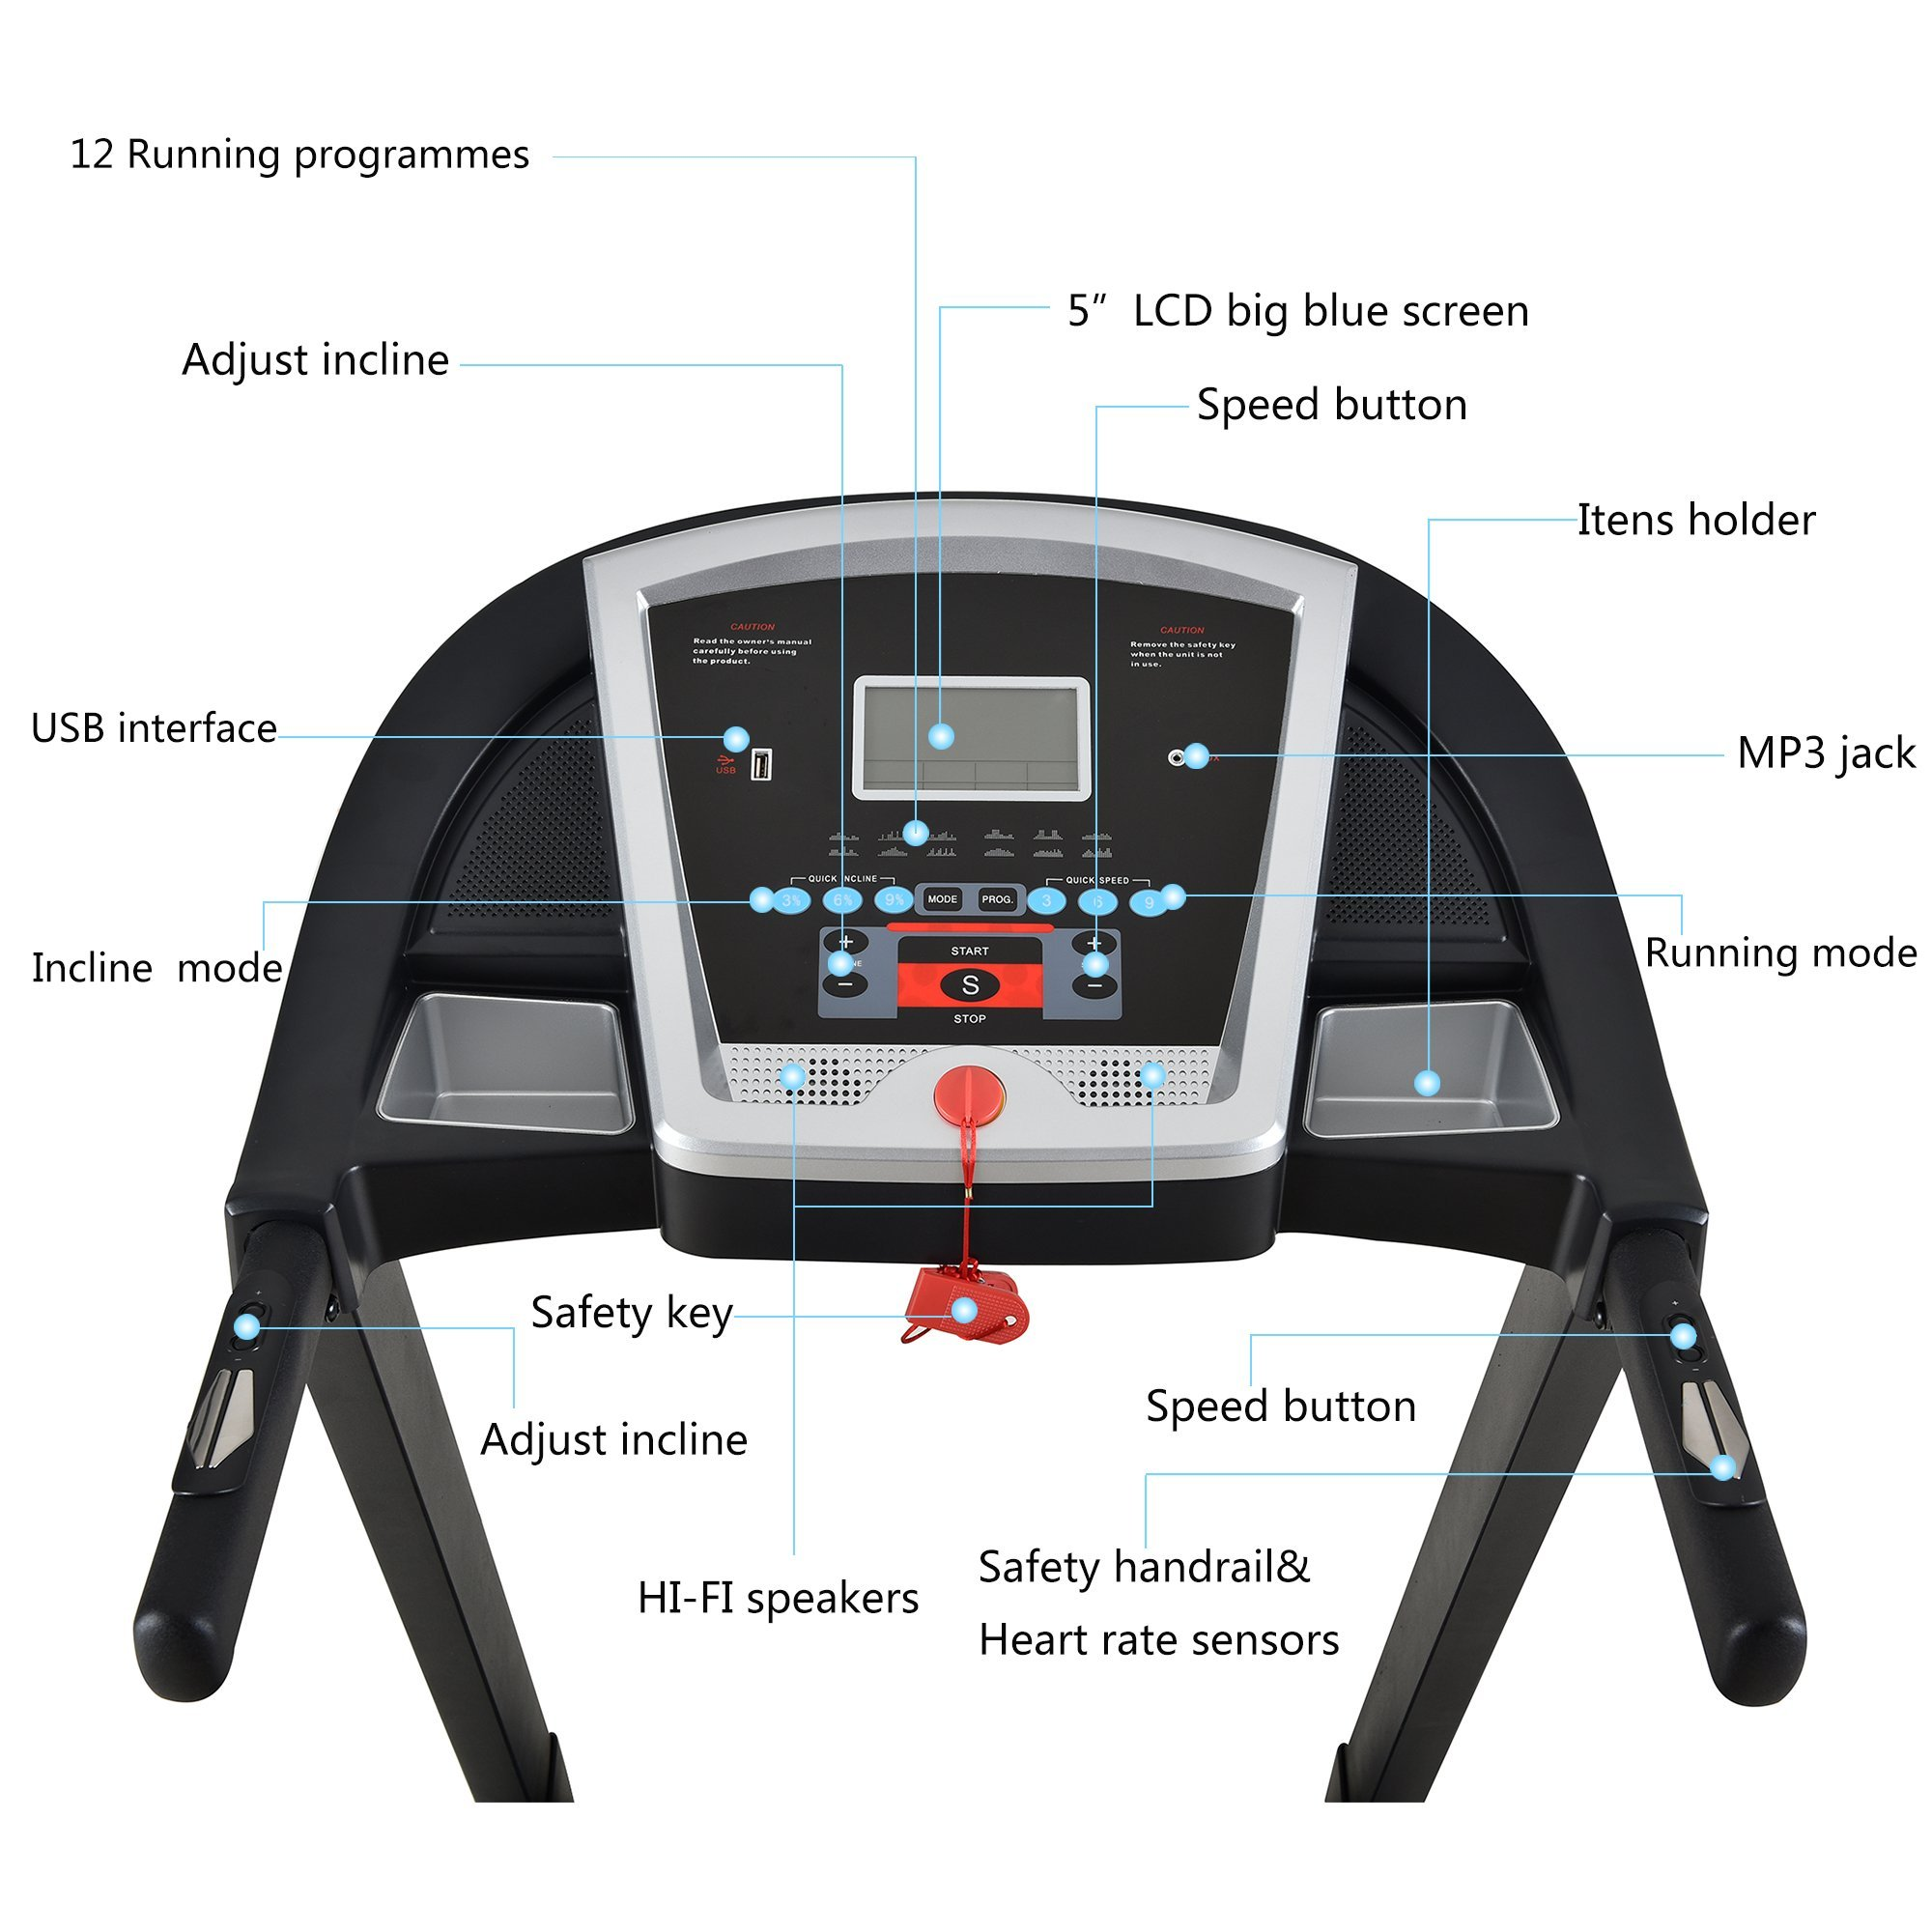 Treadmill Portable Folding Running Machine Indoor Commercial Home Health Fitness Training Equipment (US STOCK) by Shayin (Image #3)